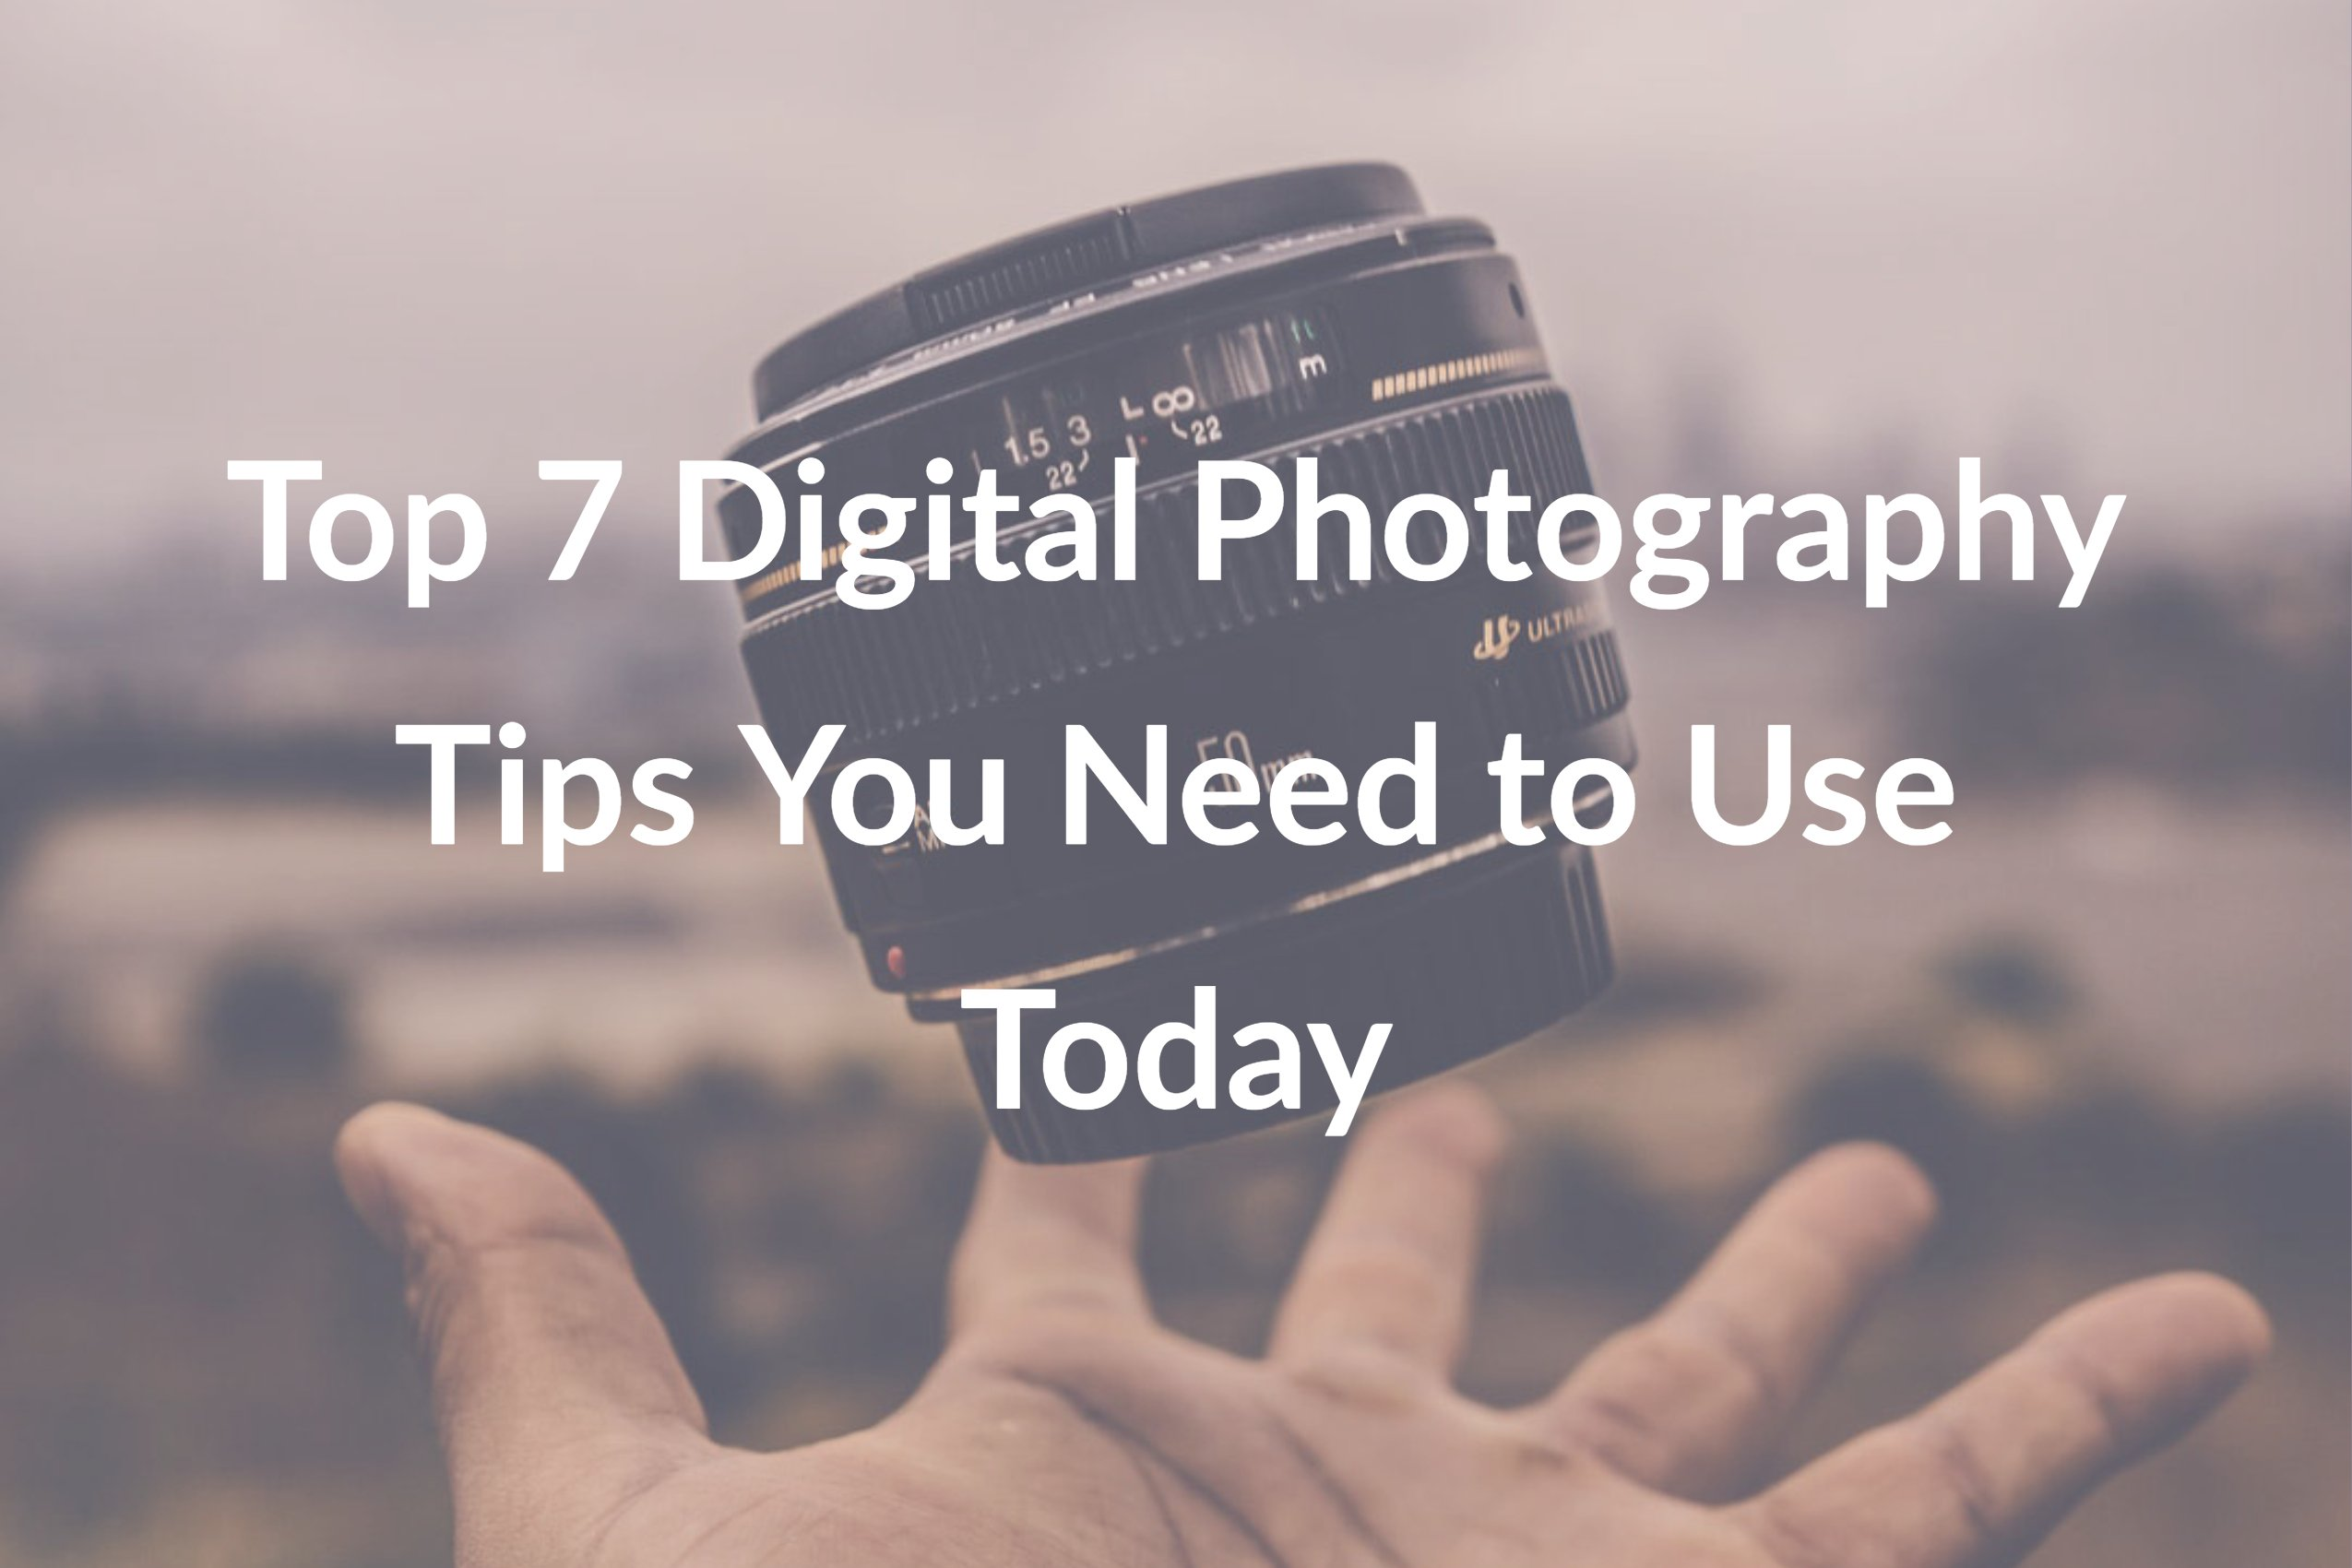 Top 7 Digital Photography Tips You Need to Use Today